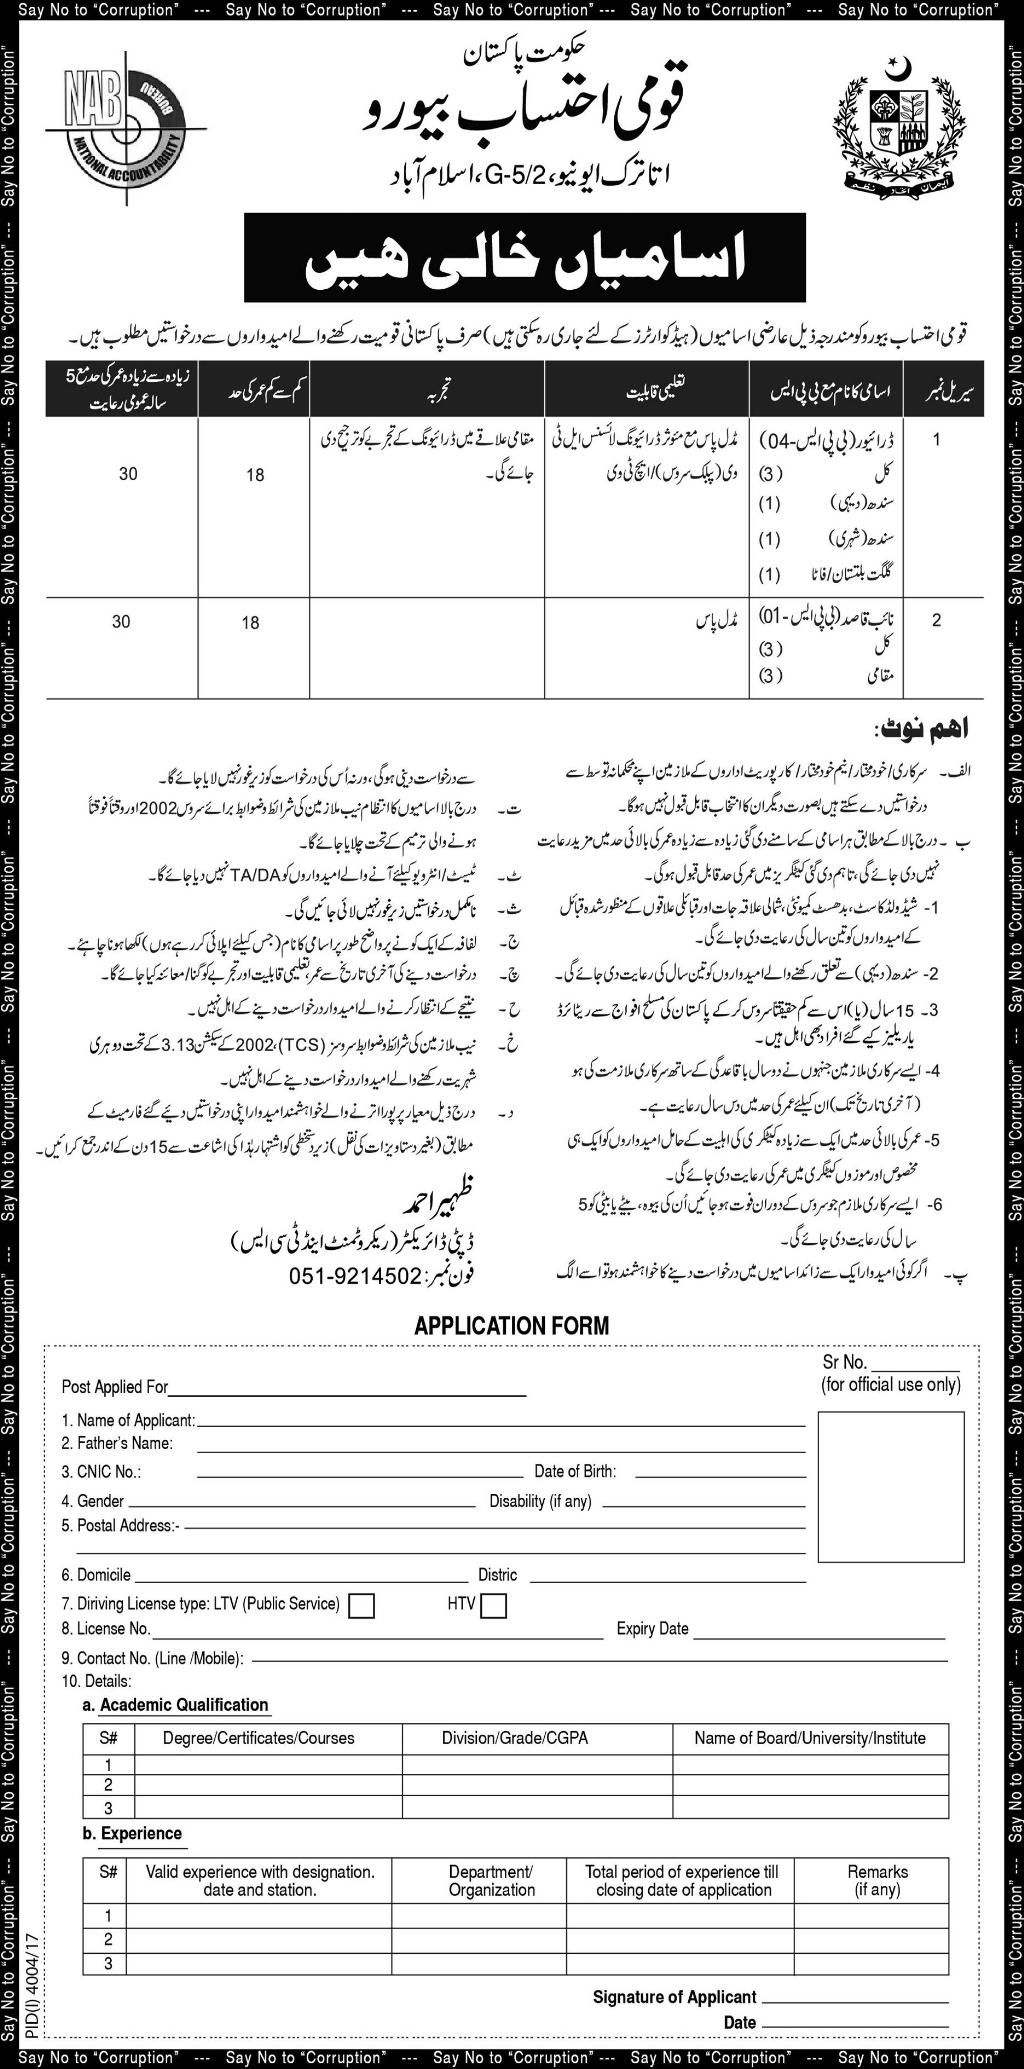 nab jobs 2018 latest advertisement application form download